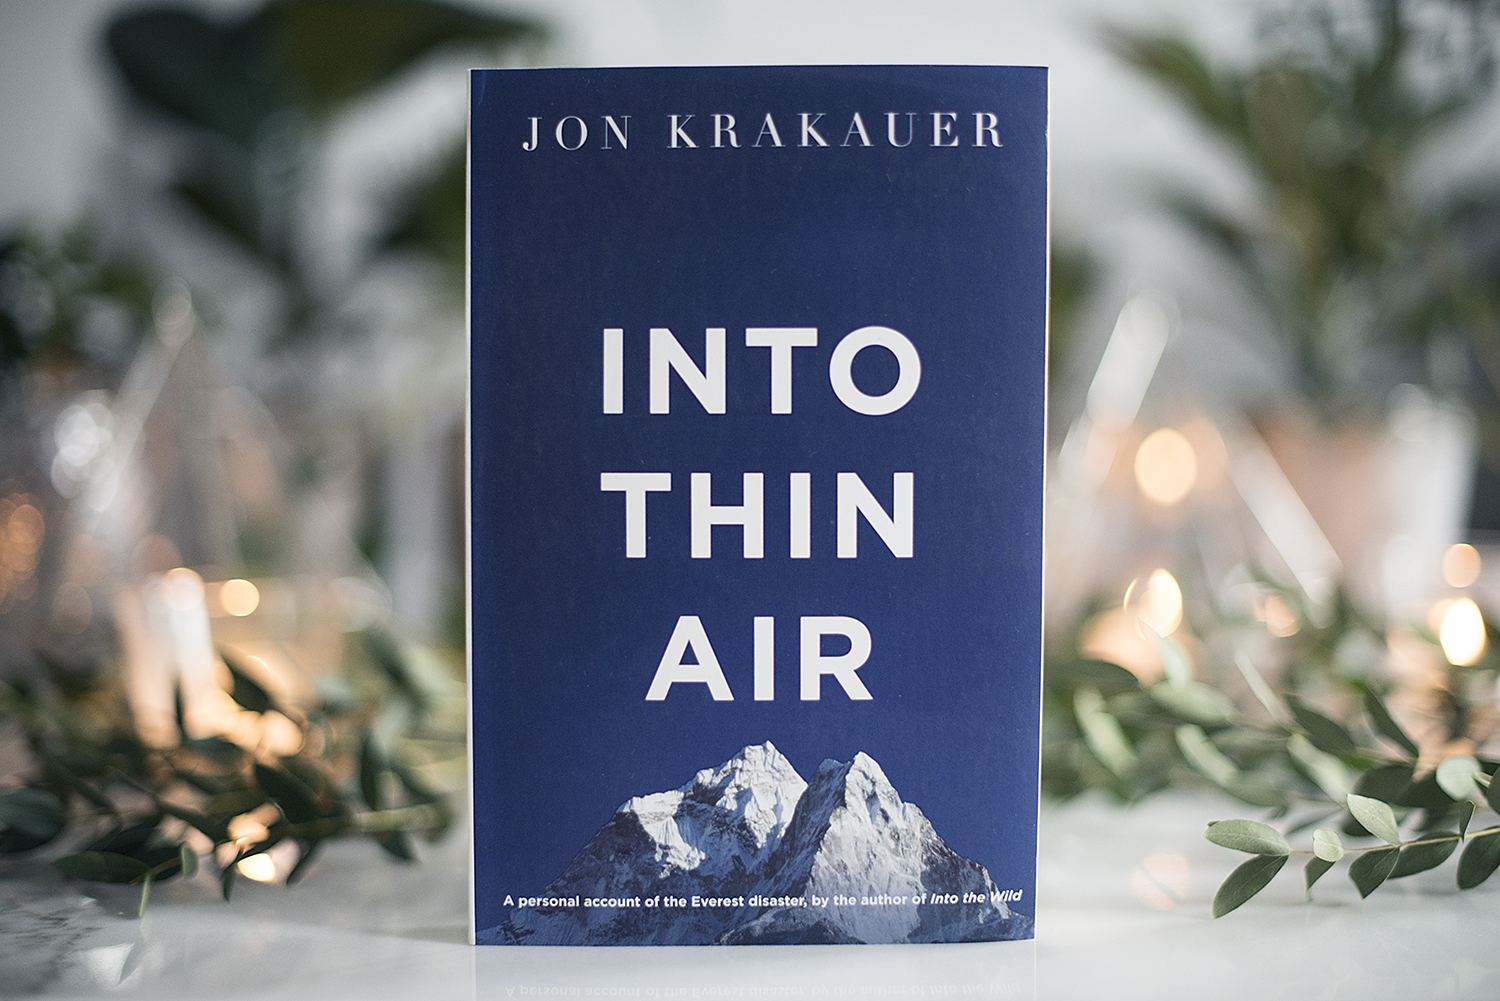 the mount everest tragedy in into thin air a book by jon krakauer Into thin air a personal account of the mount everest disaster (book) : krakauer, jon : a history of mount everest expedition is intertwined with the disastrous expedition the author was a part of, during which five members were killed by a hurricane-strength blizzard.